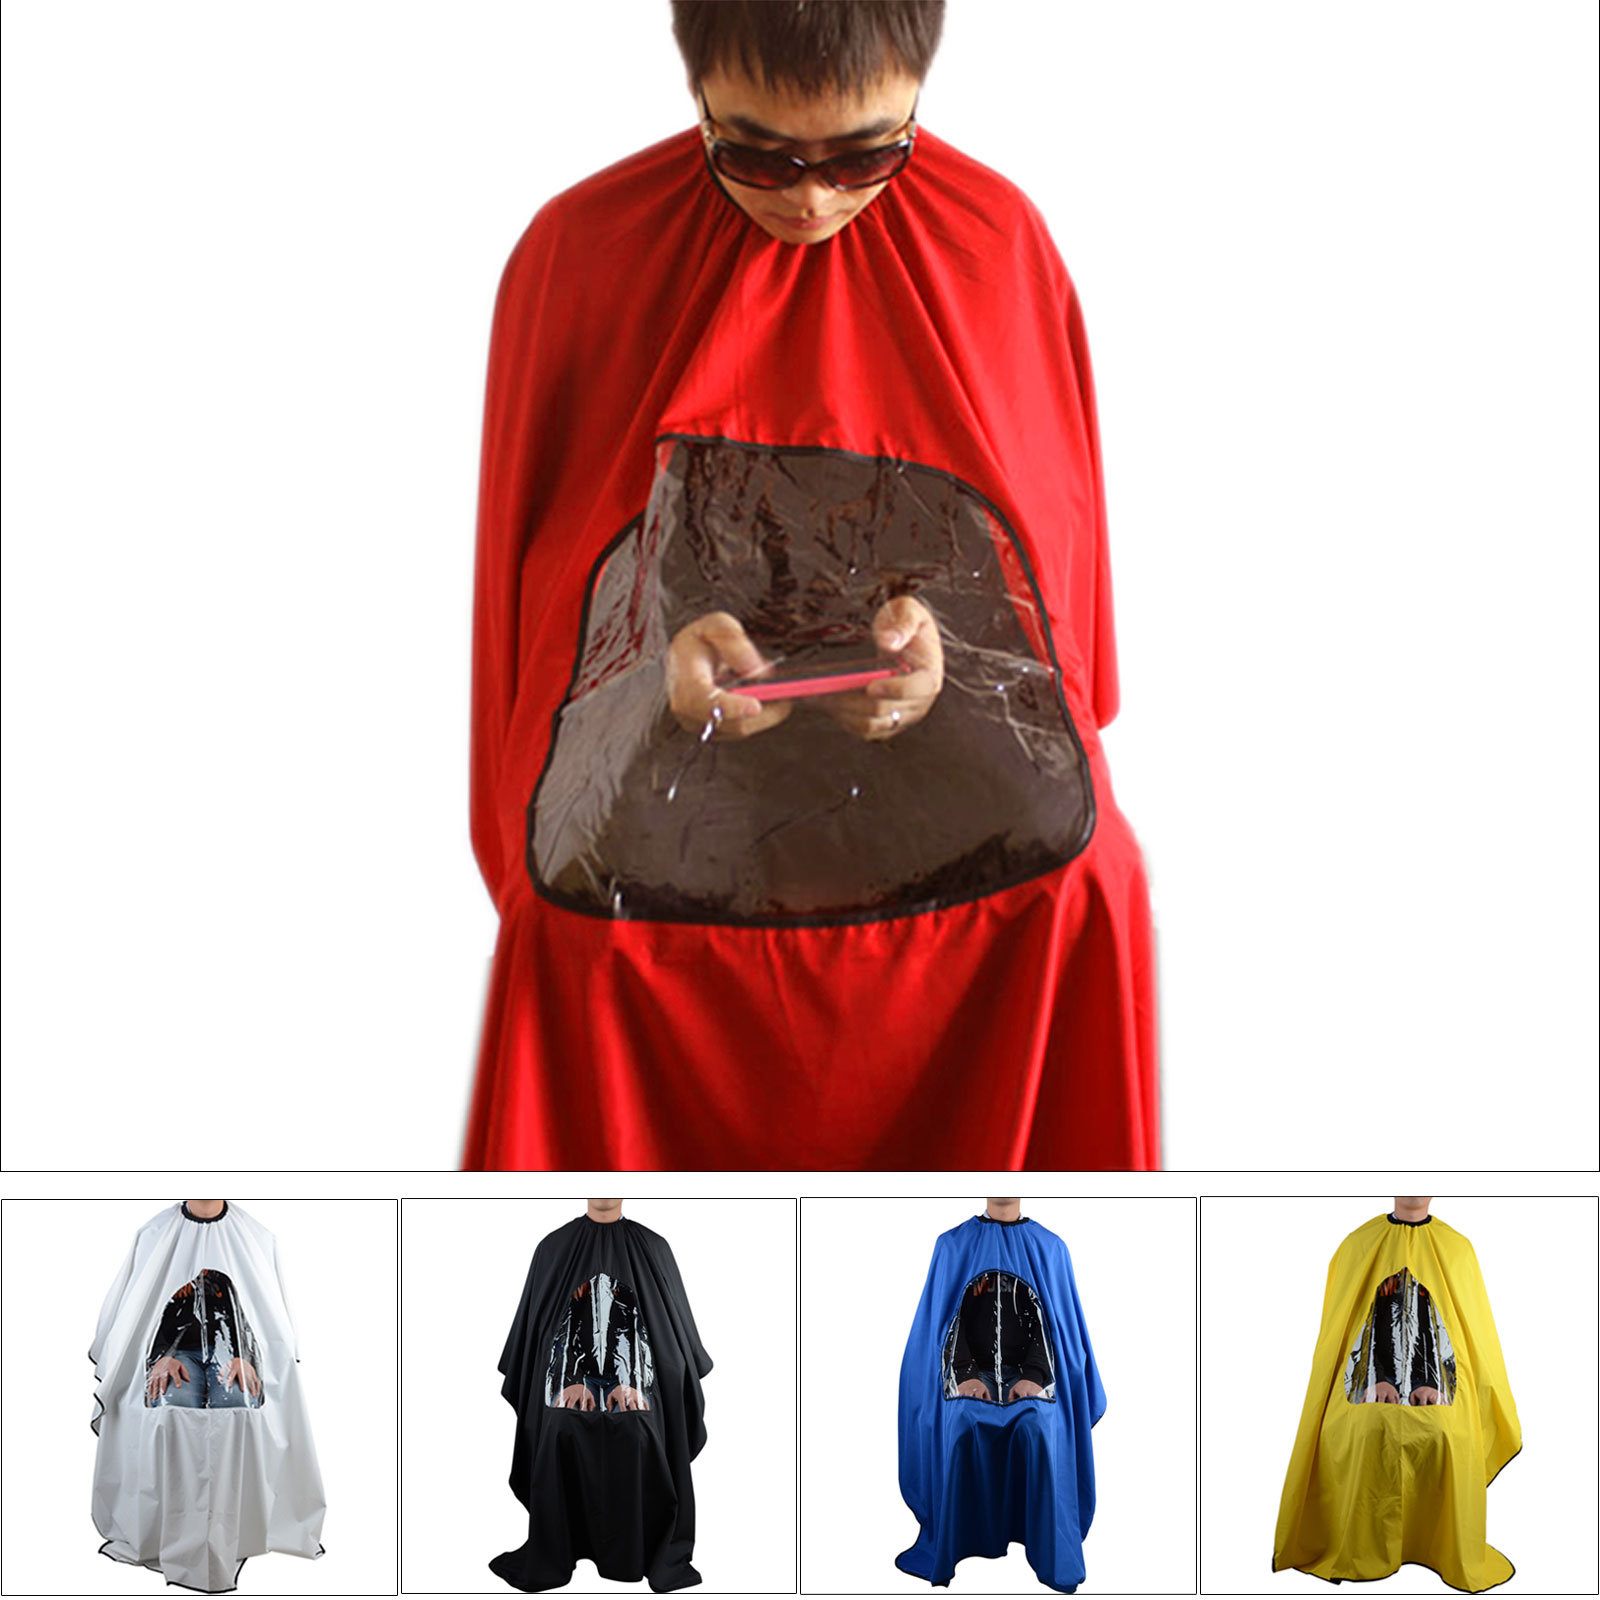 Hair Cutting Clothes Viewing Window Hairdressing Cape